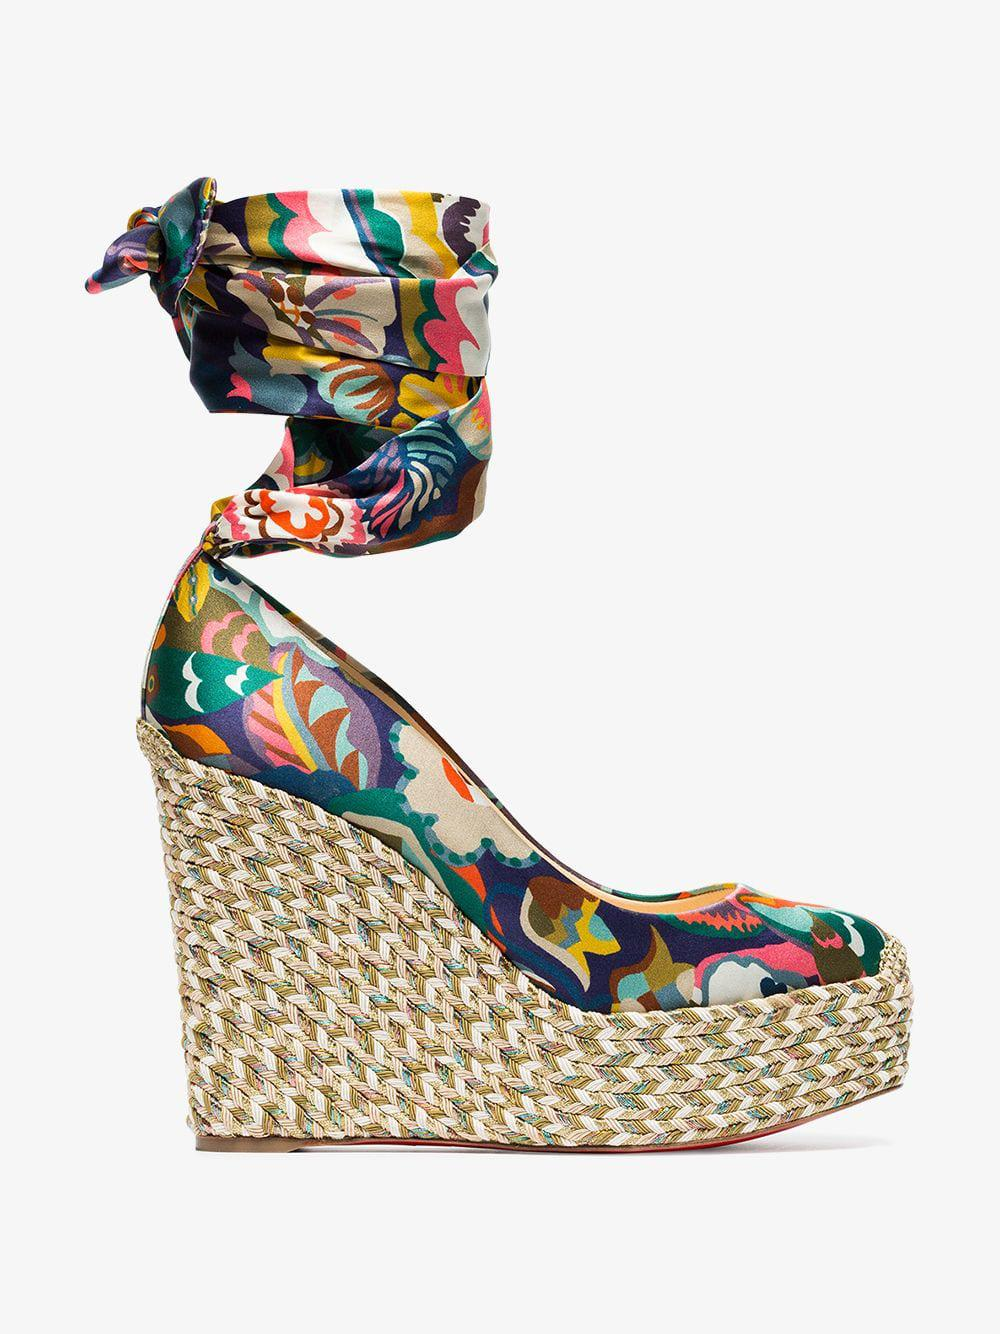 91404a7ccbb Christian Louboutin - Multicolor Multicoloured Barbaria Zeppa 120 Floral  Satin Wedge Sandals - Lyst. View fullscreen